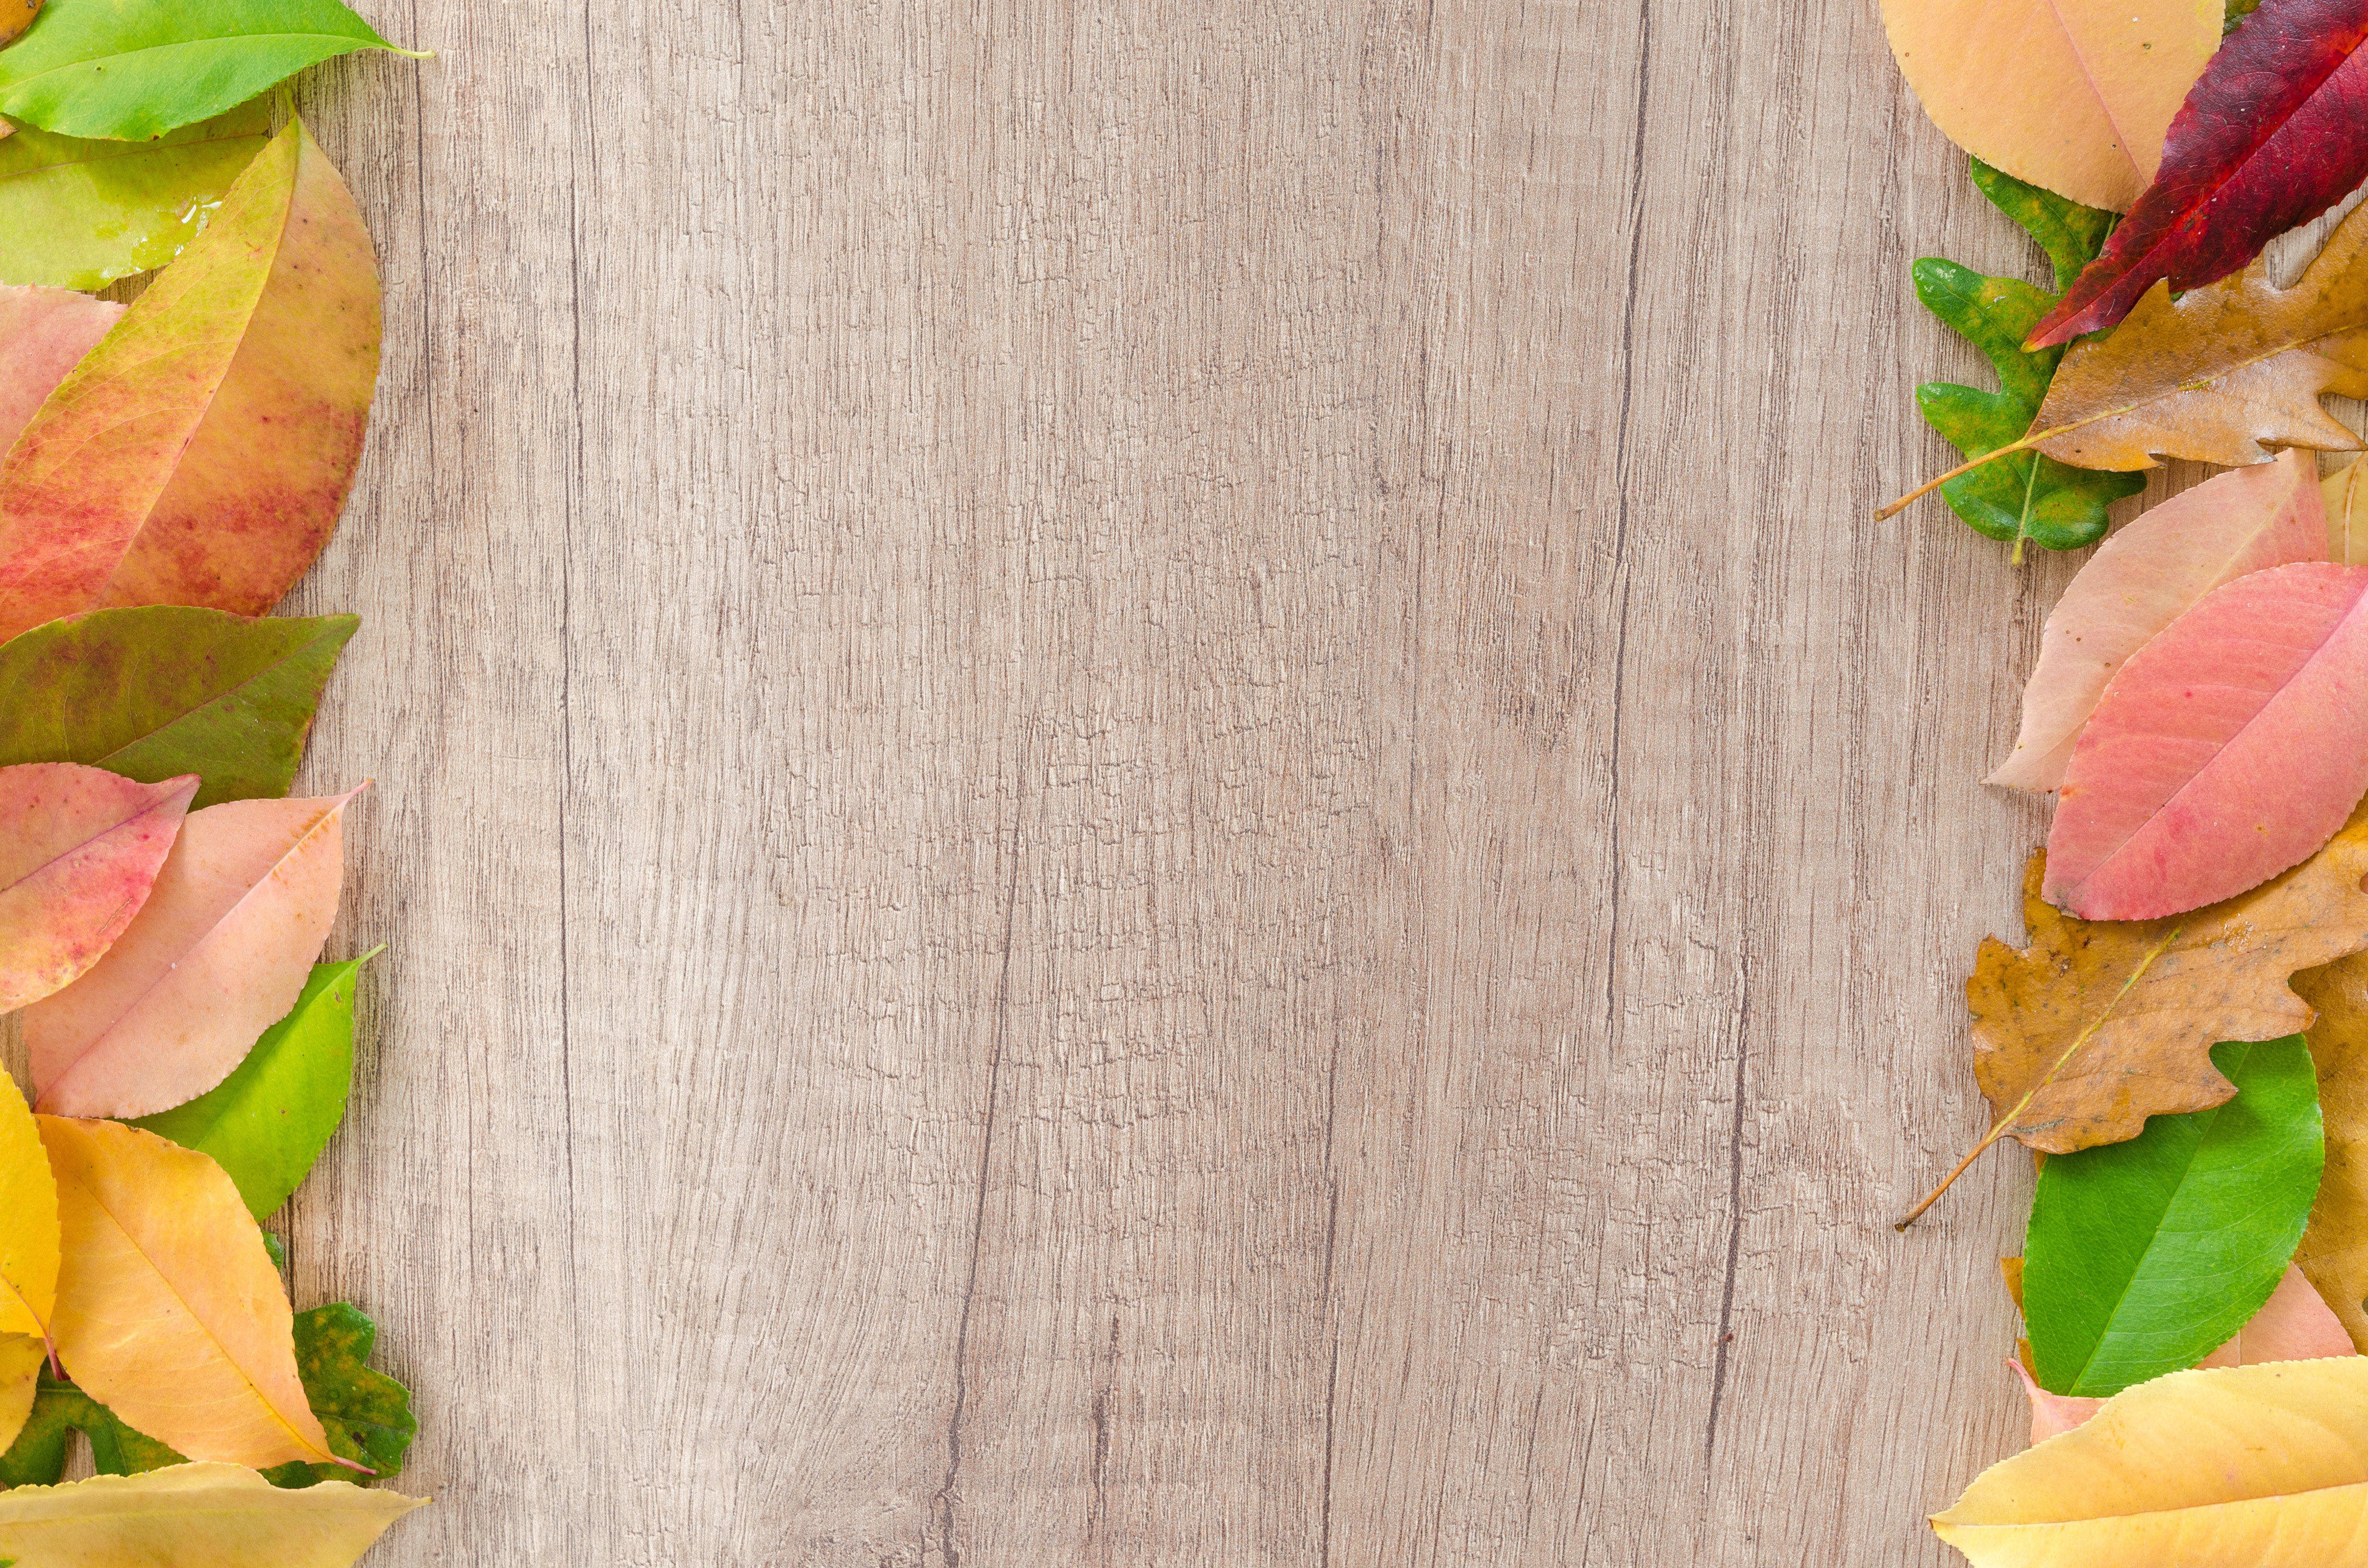 Assorted Leaves on Brown Wooden Surface, Autumn, Maple, Wood, Vivid, HQ Photo